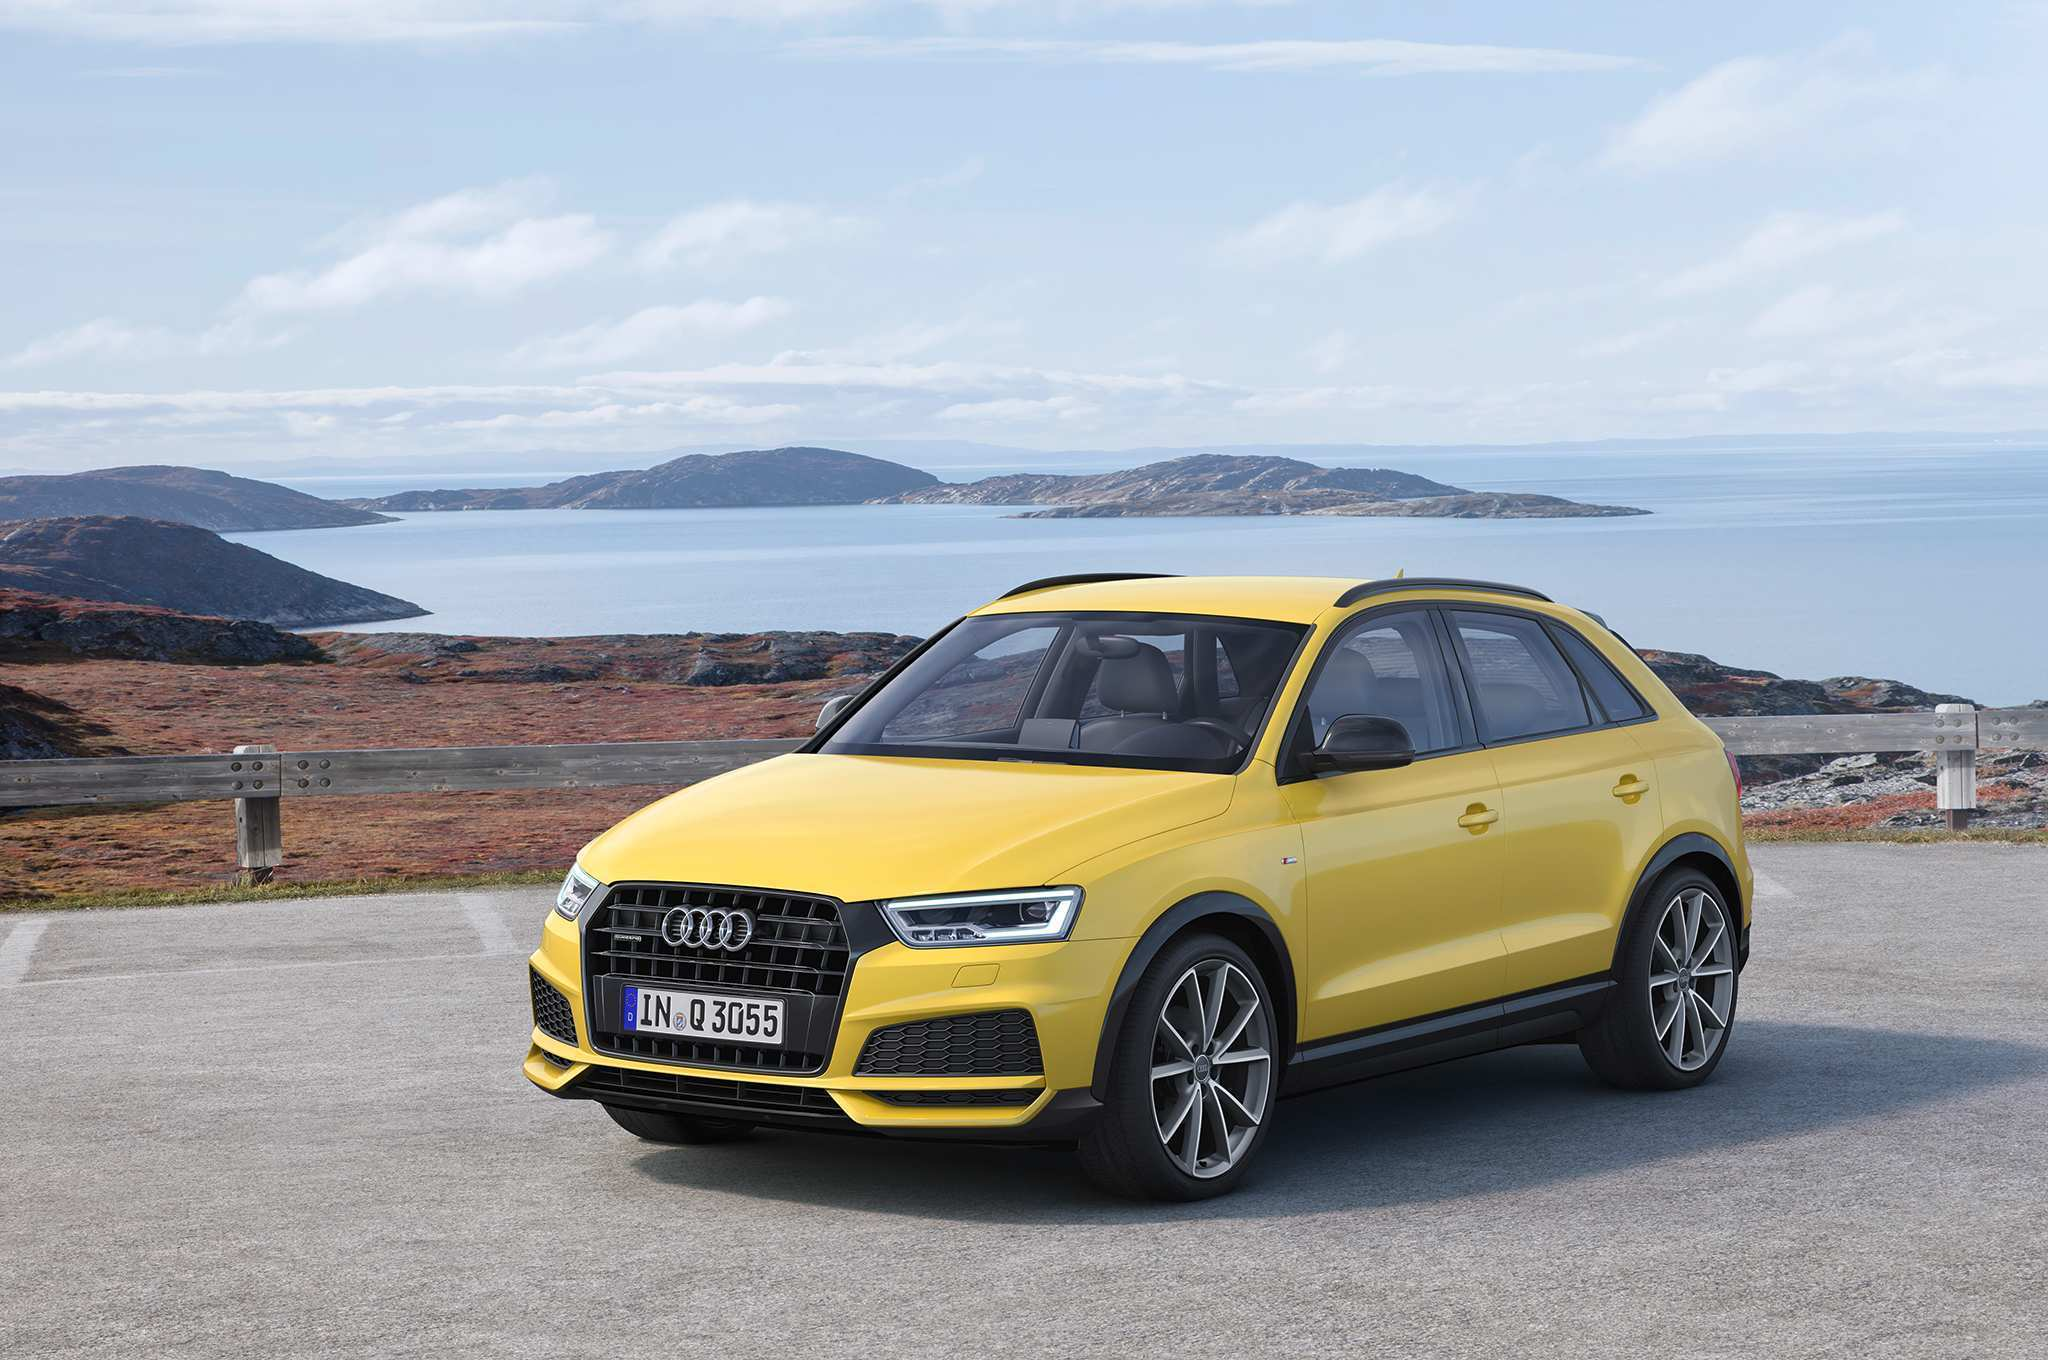 45 Concept of 2019 Audi Q3 Dimensions Model by 2019 Audi Q3 Dimensions